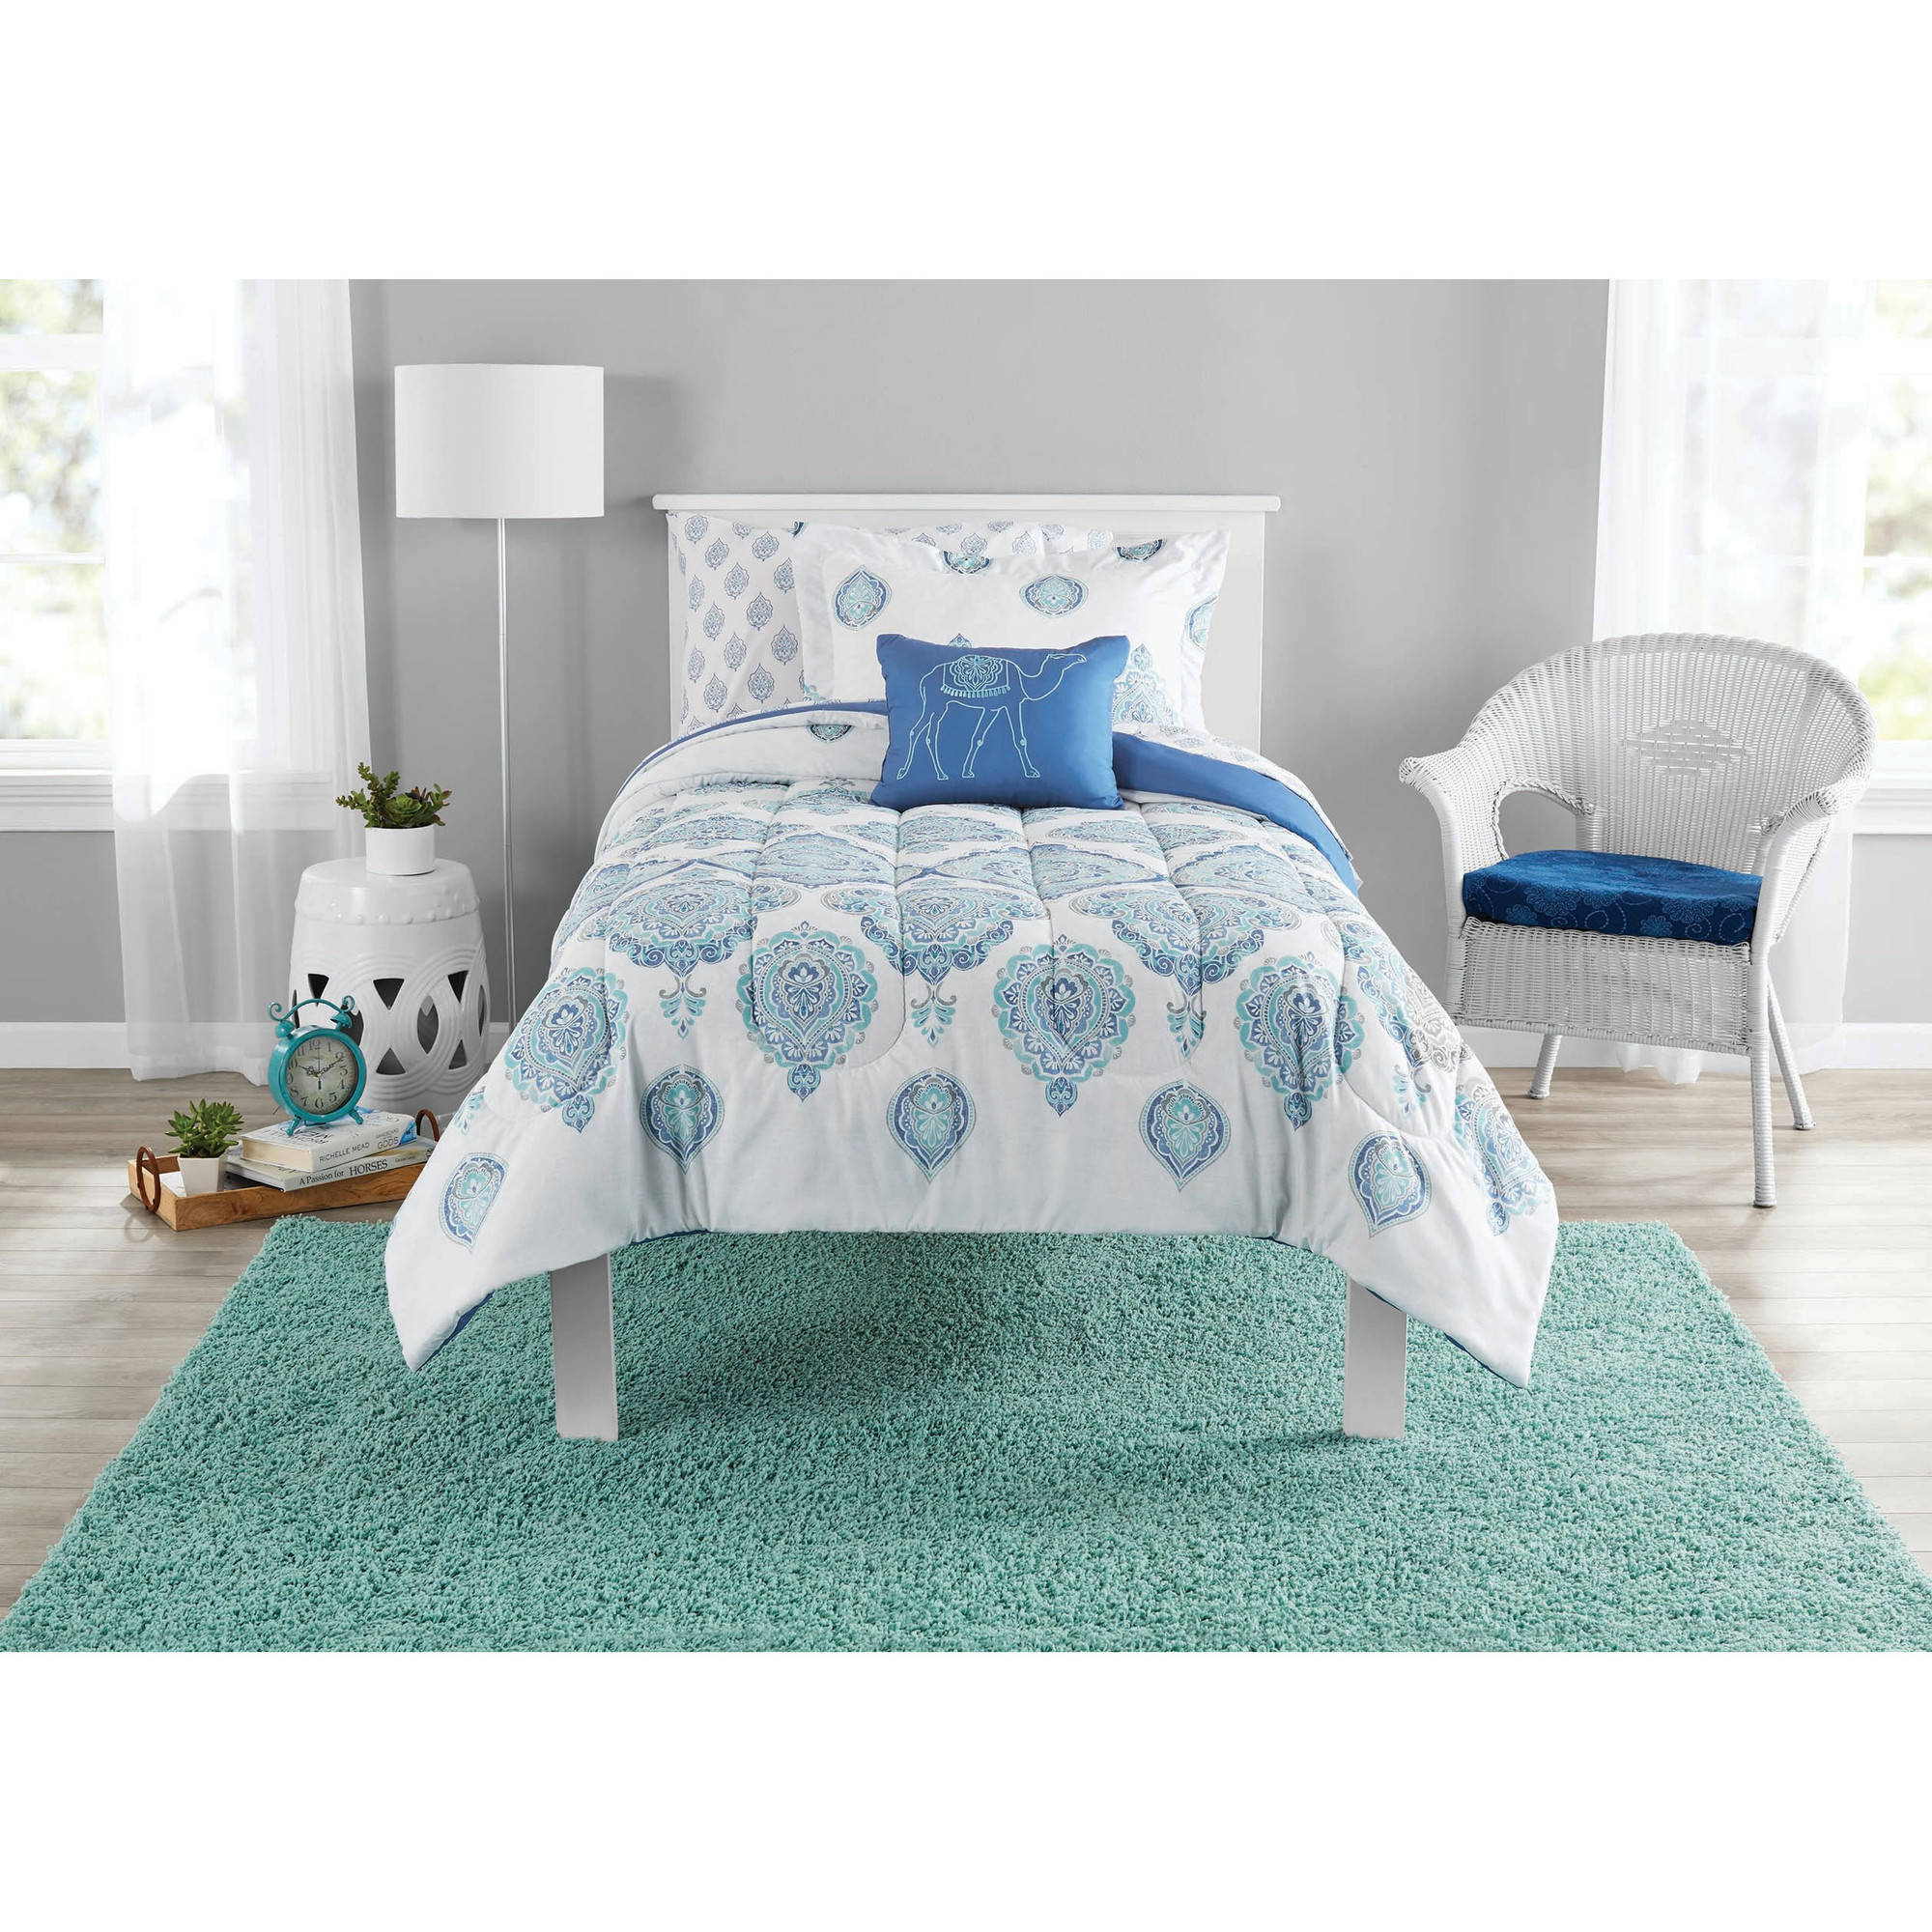 Mainstays Bed-In-A-Bag Arabesque Bedding Set